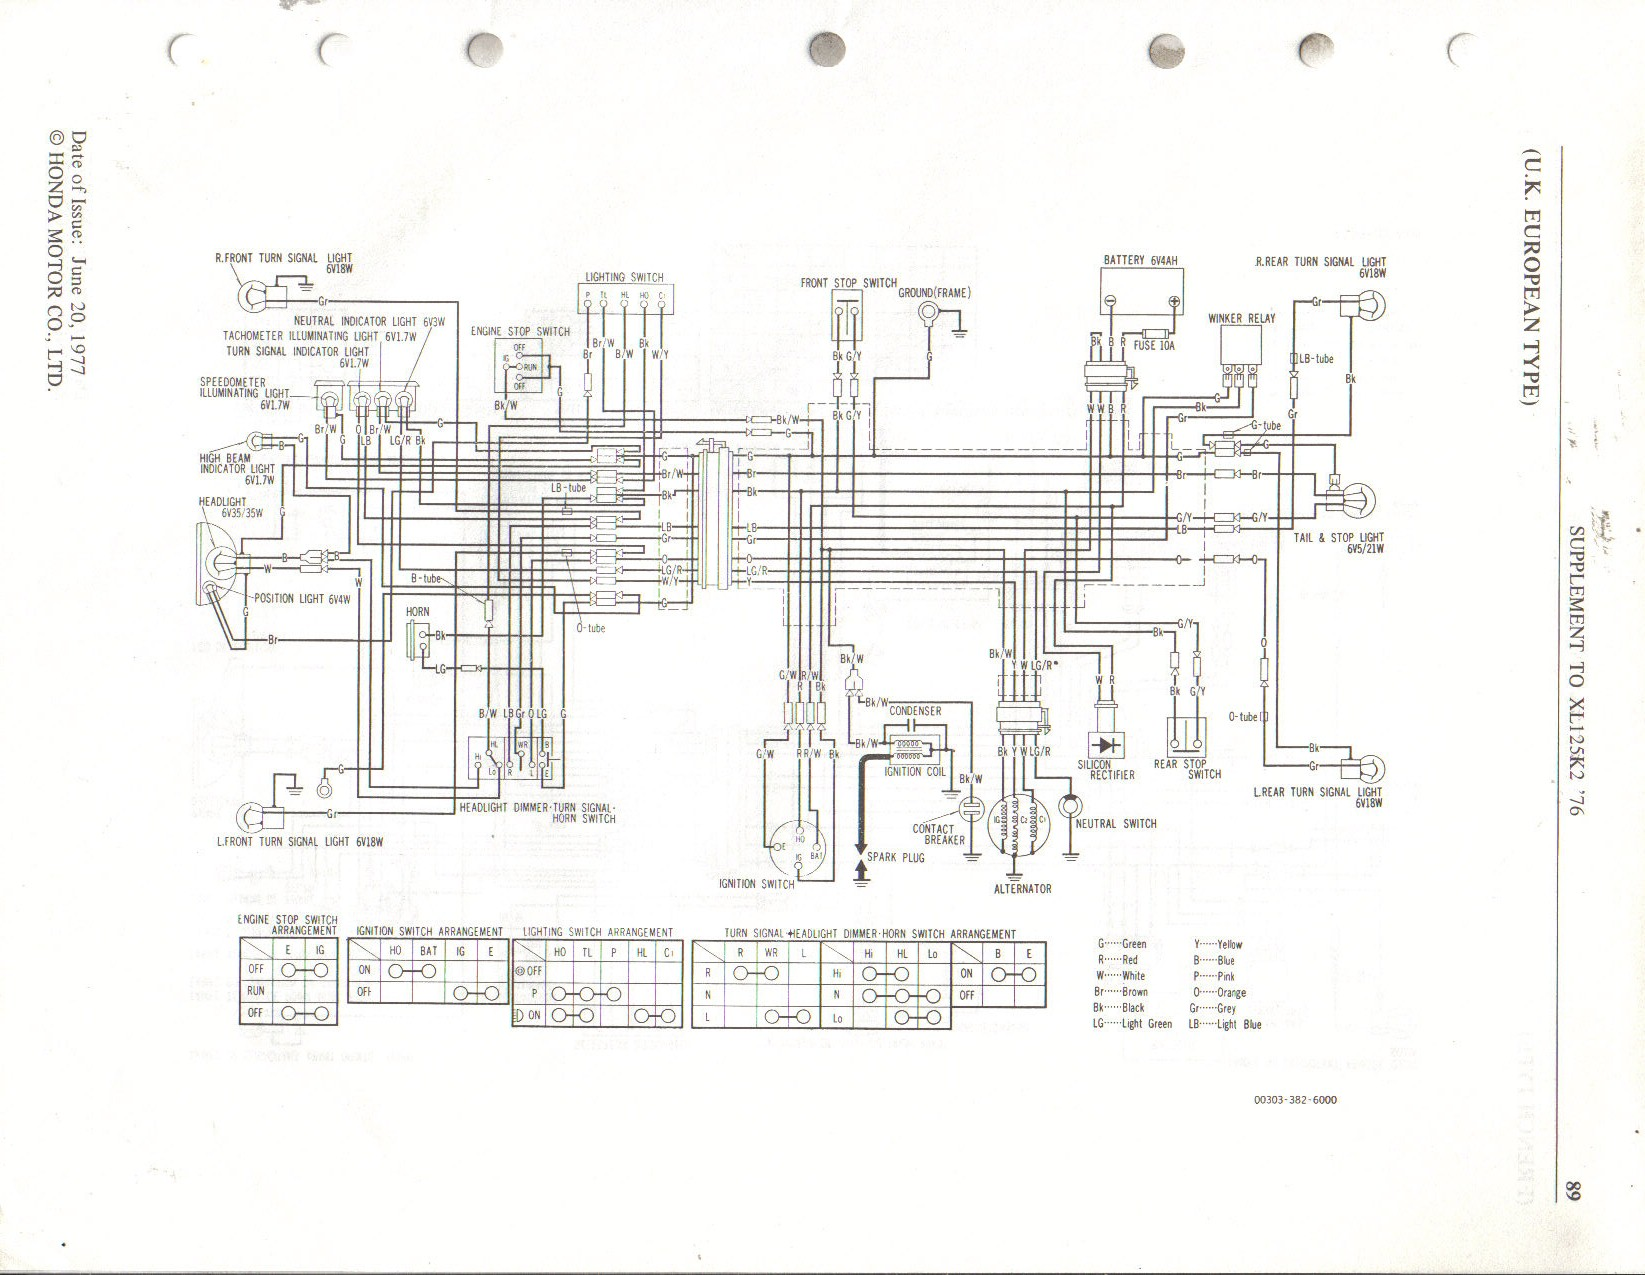 Remarkable Honda Xl 125 S Wiring Diagram Auto Electrical Wiring Diagram Wiring Cloud Geisbieswglorg